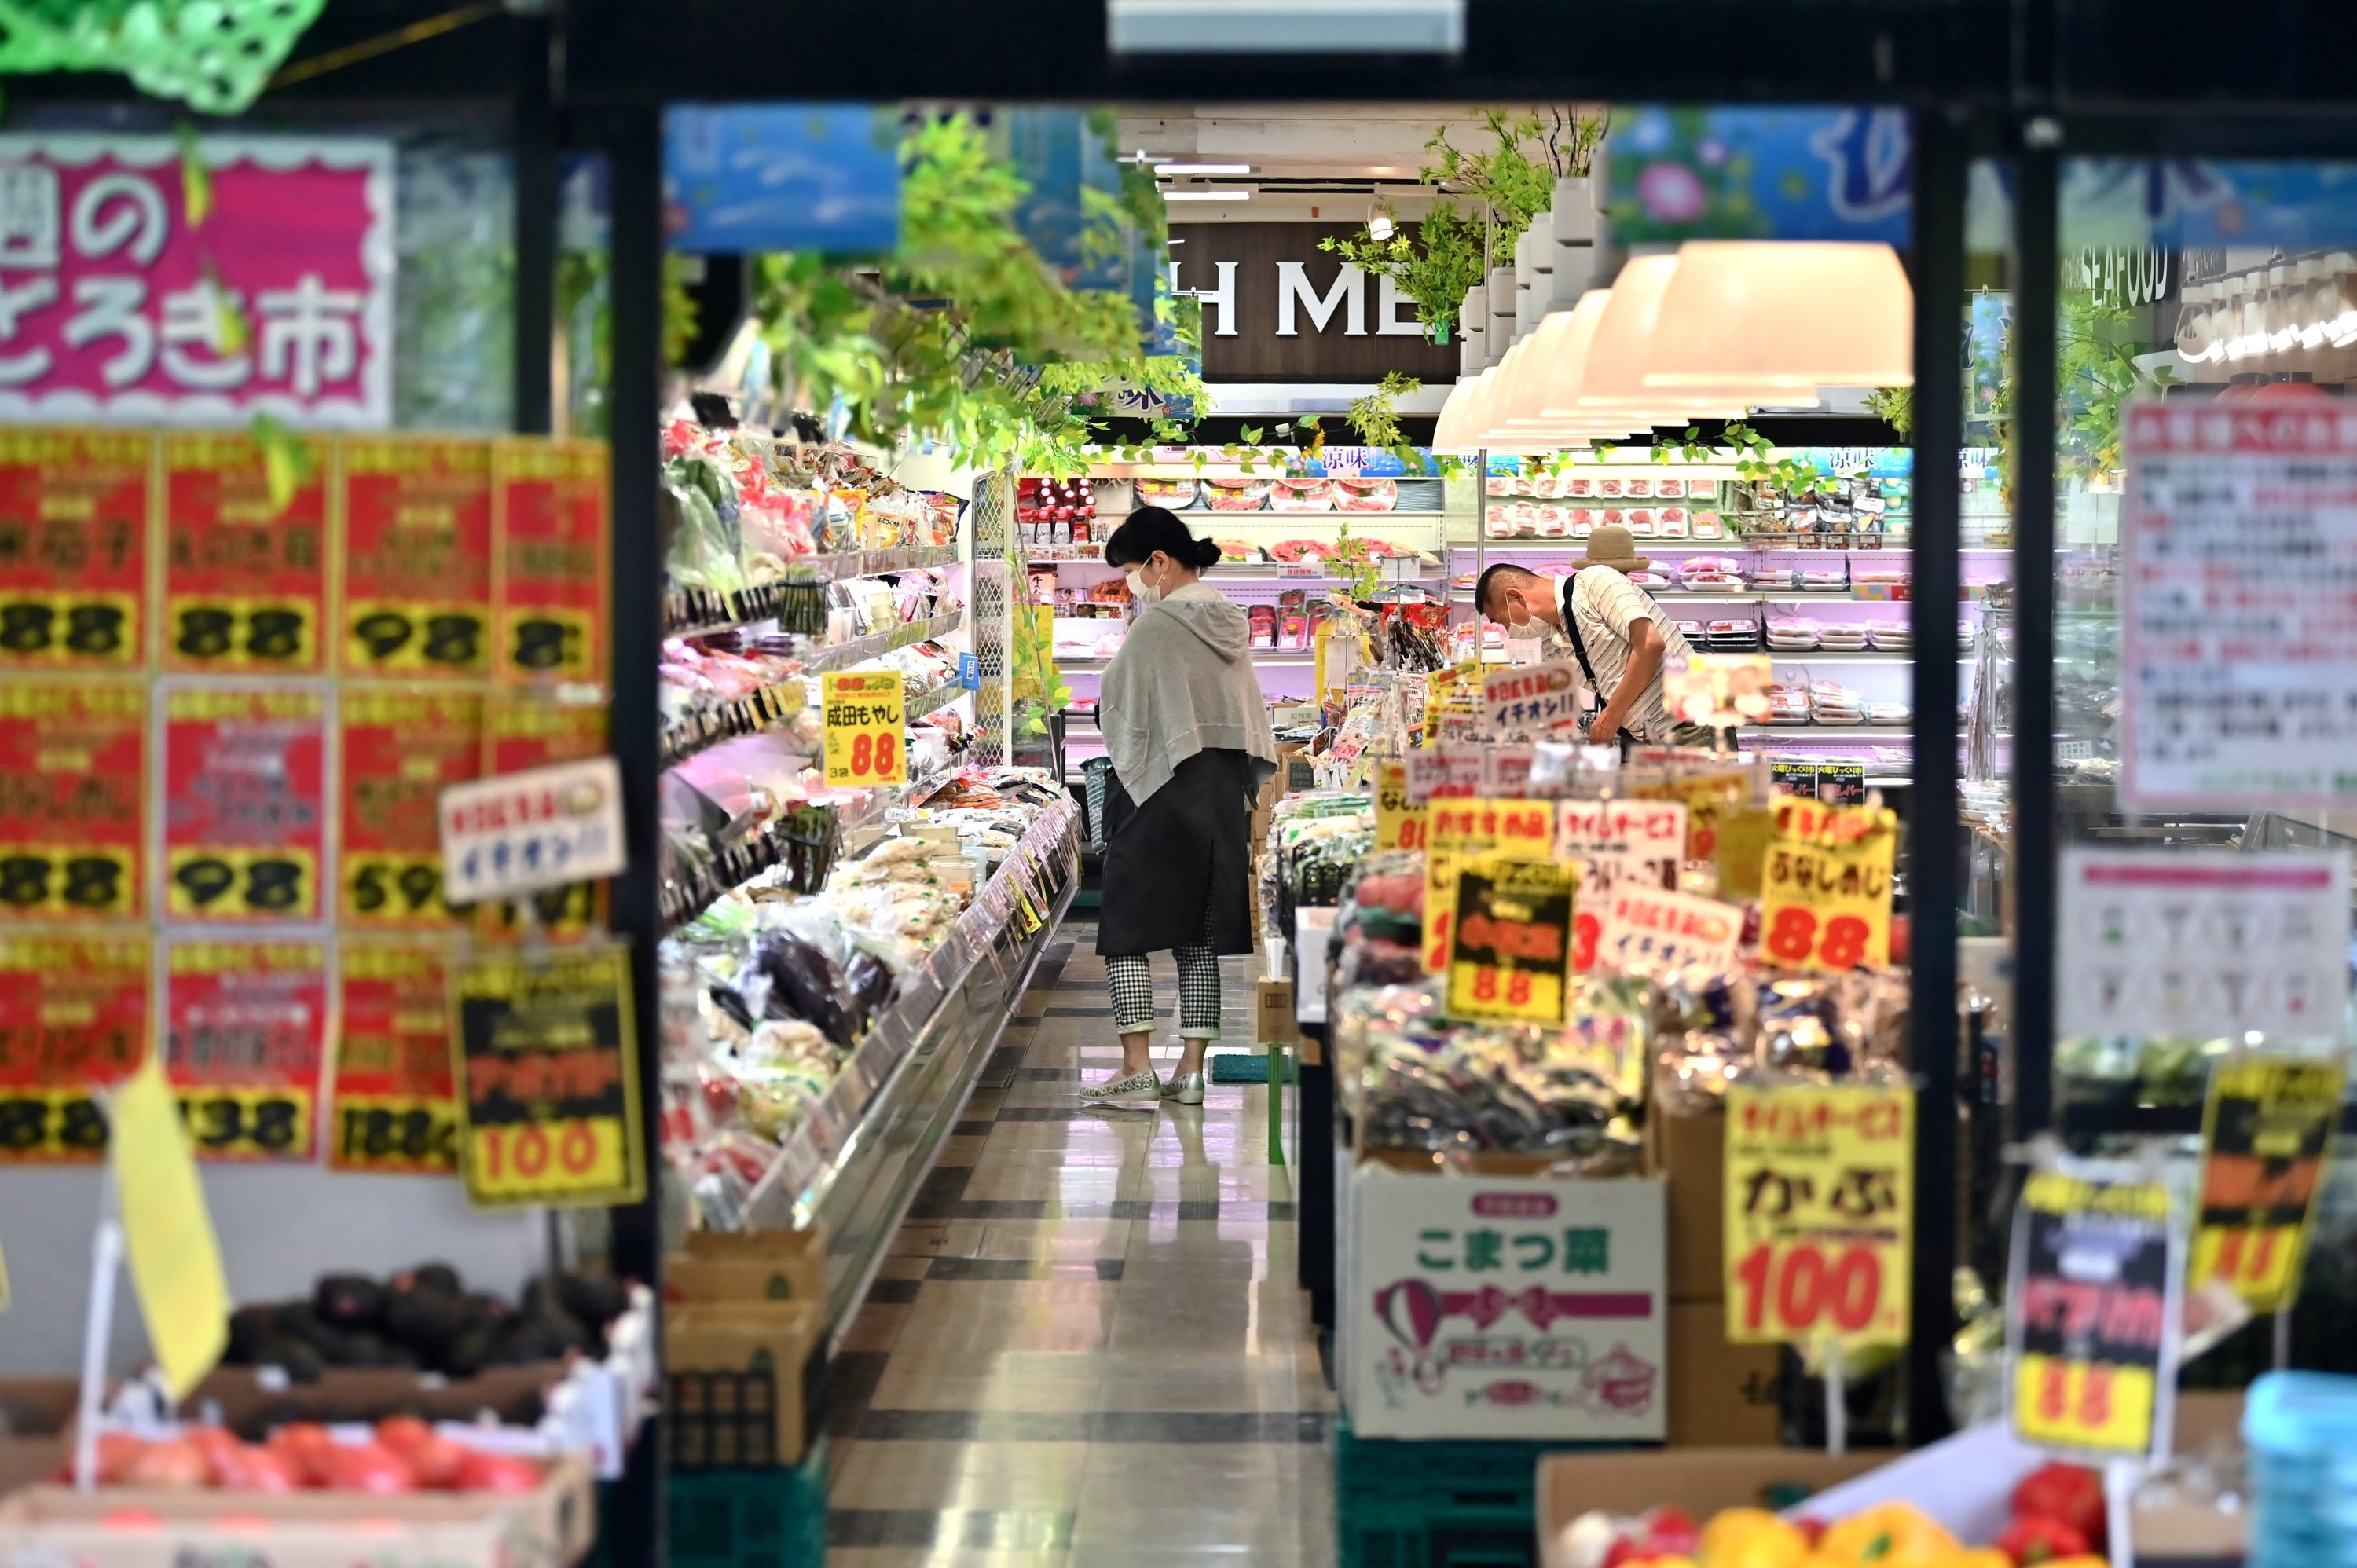 The exterior of a Tokyo grocery store